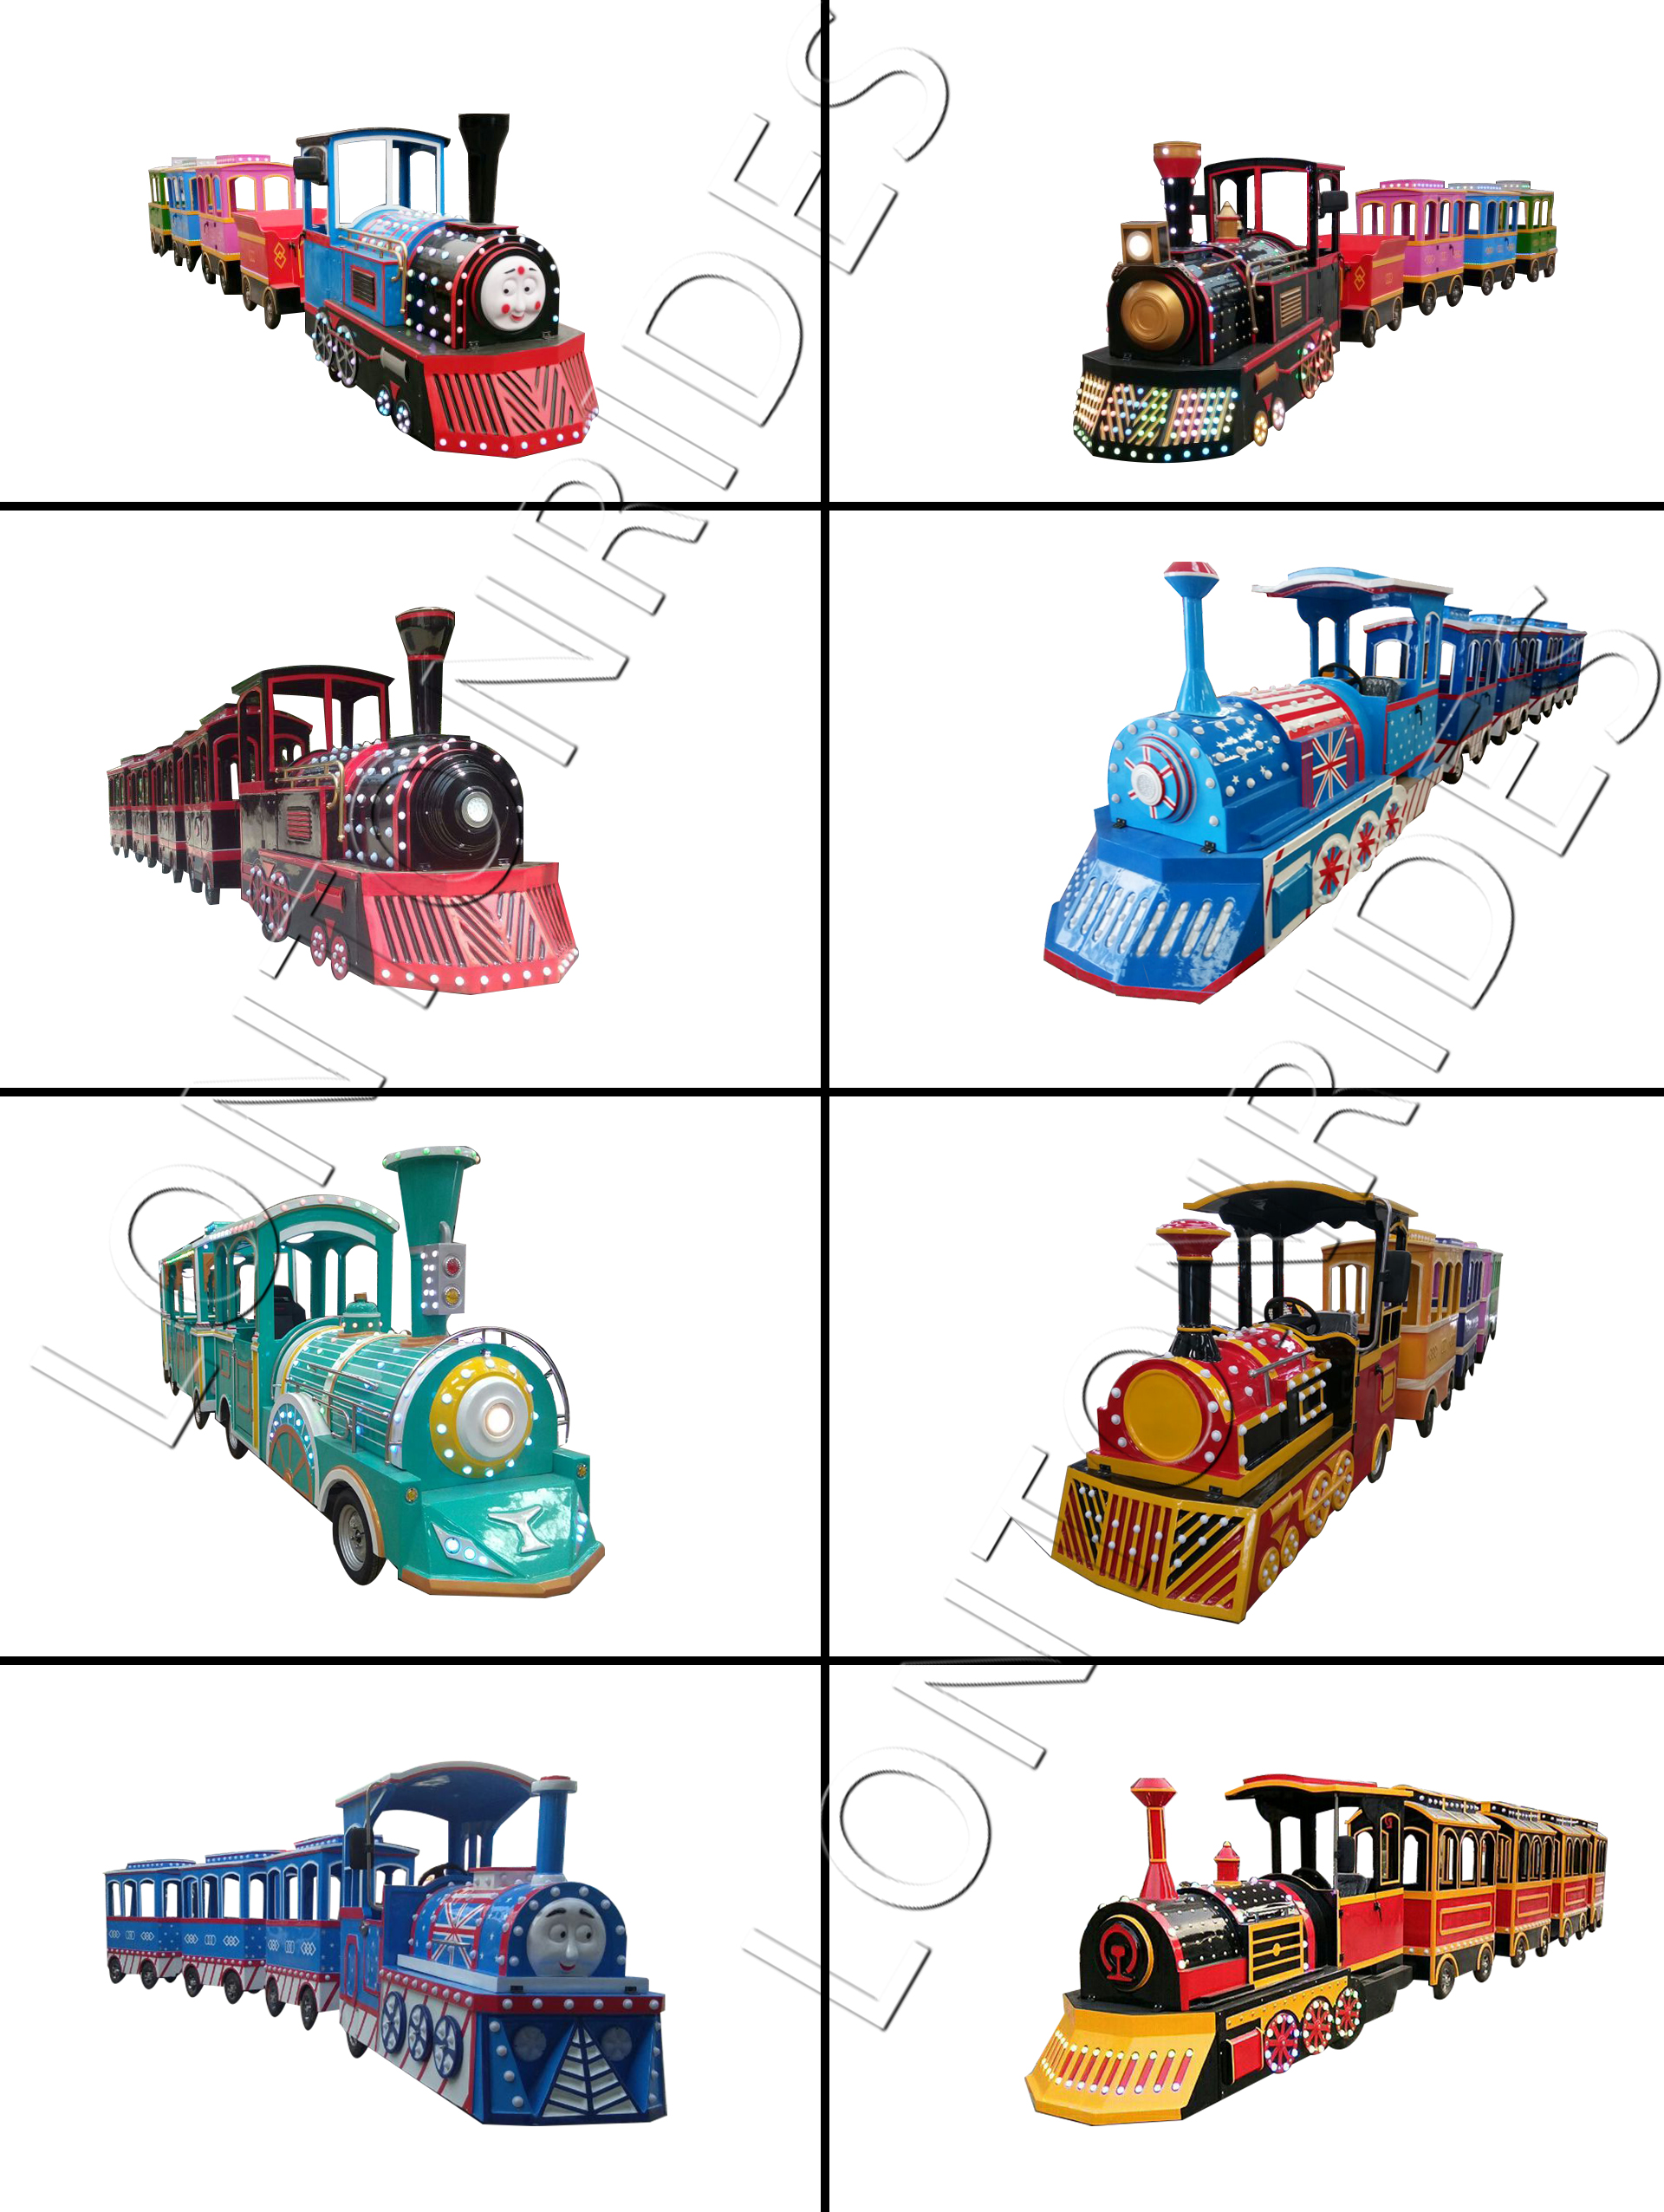 Trackless train designs 加水印